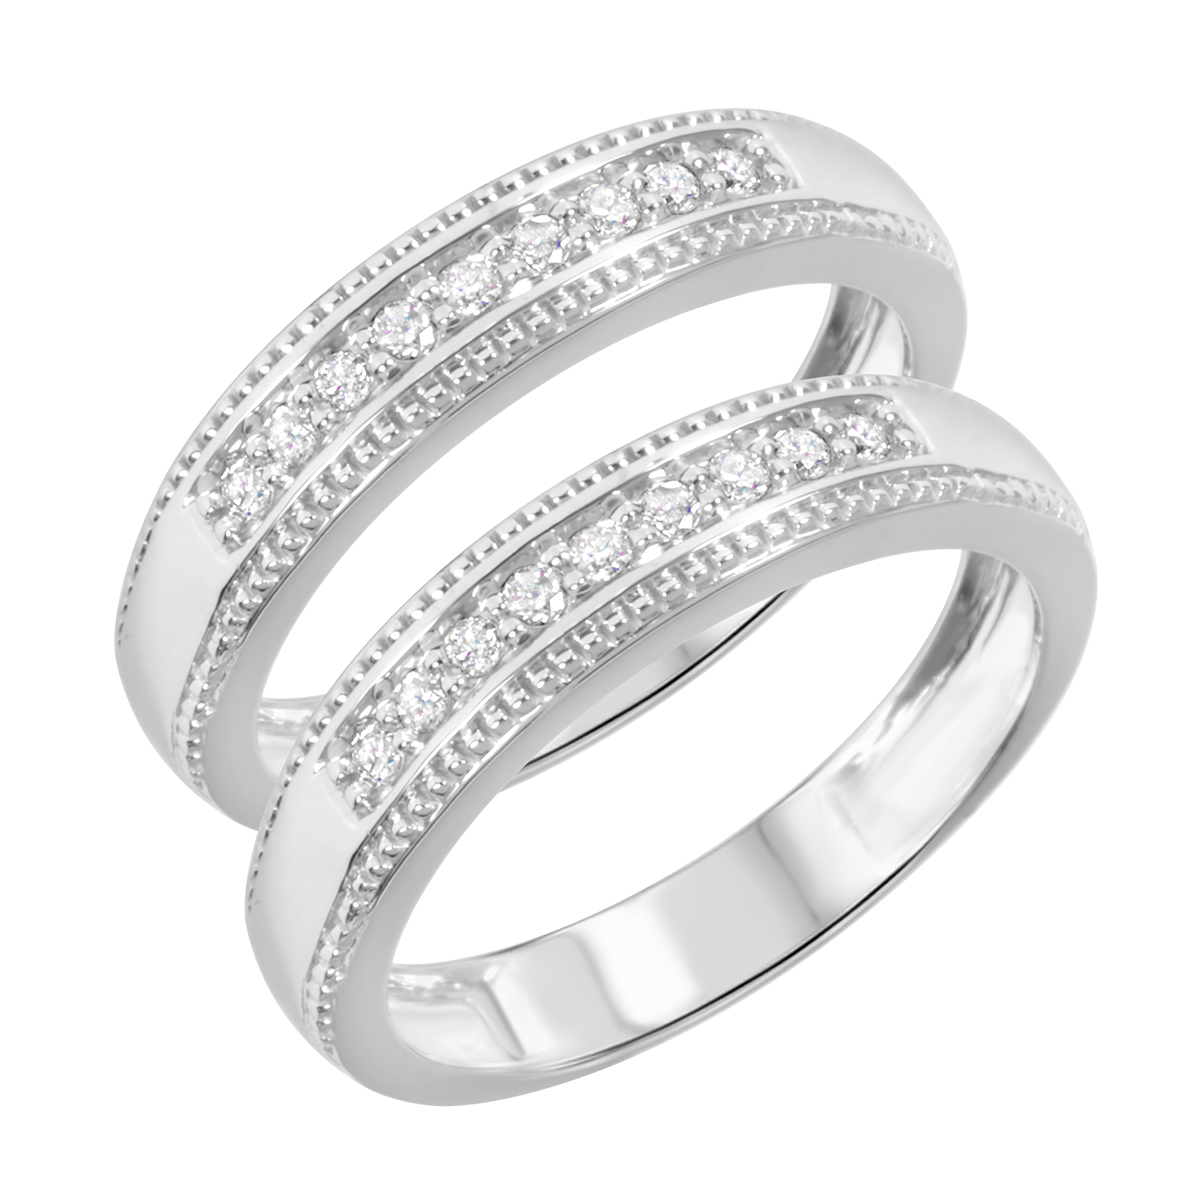 1/4 Carat T.W. Round Cut Ladies Same Sex Wedding Band Set 10K White Gold